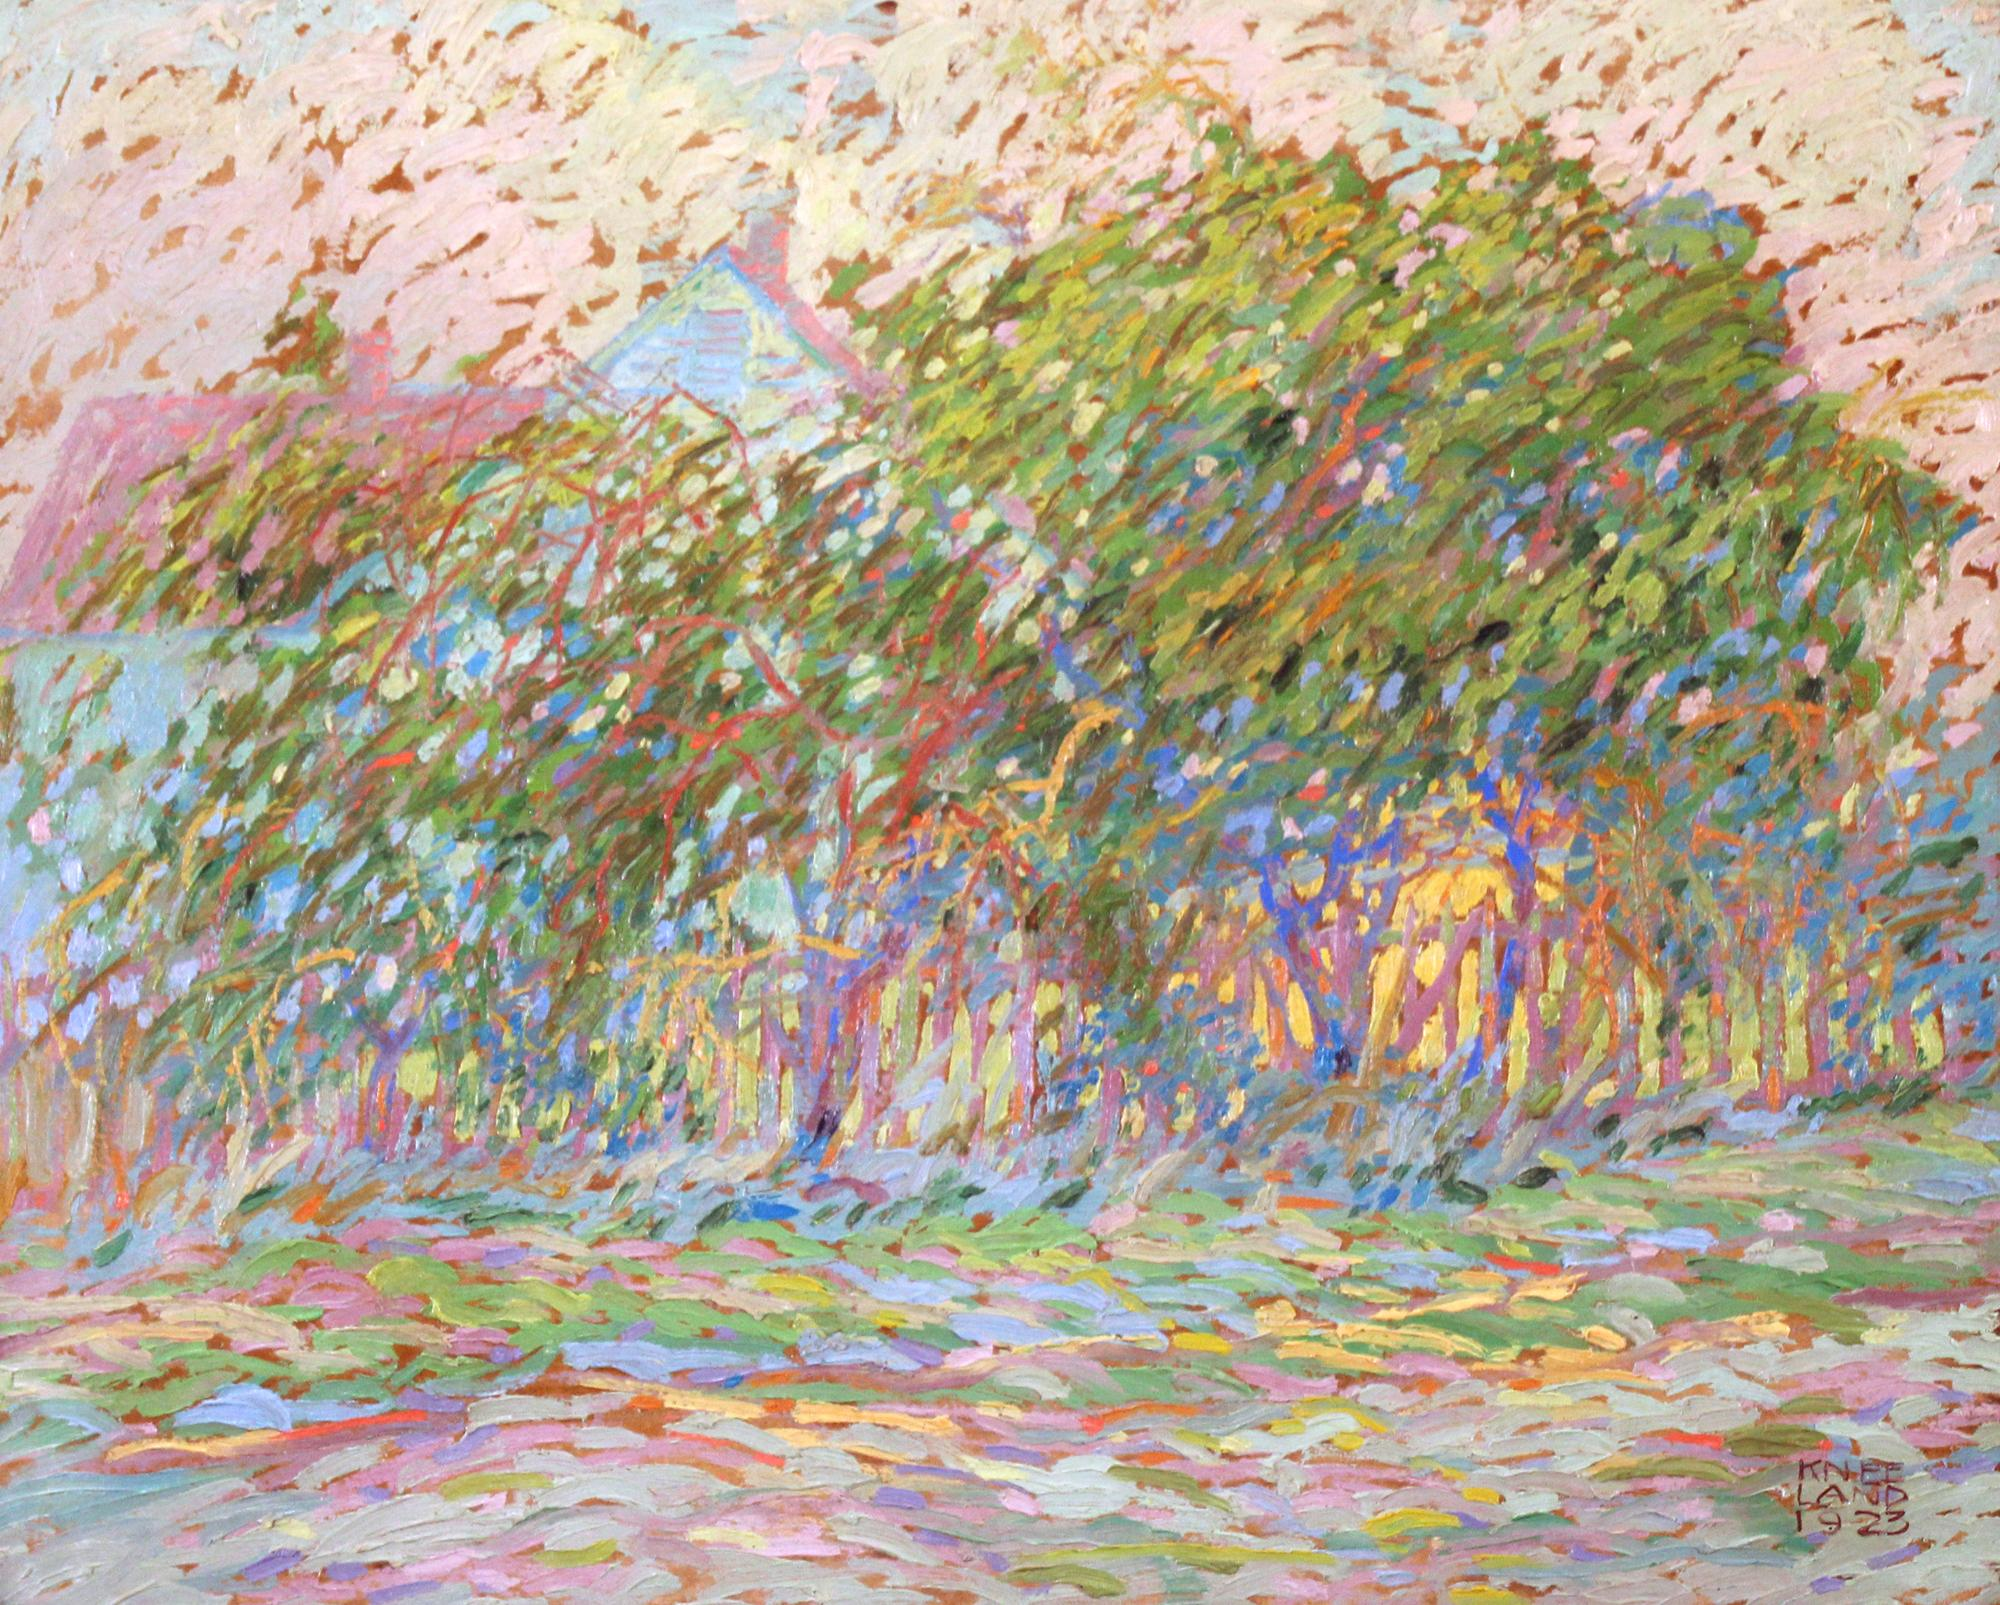 Bucks County Cottage, Pennsylvania Impressionist Landscape, Signed and Dated